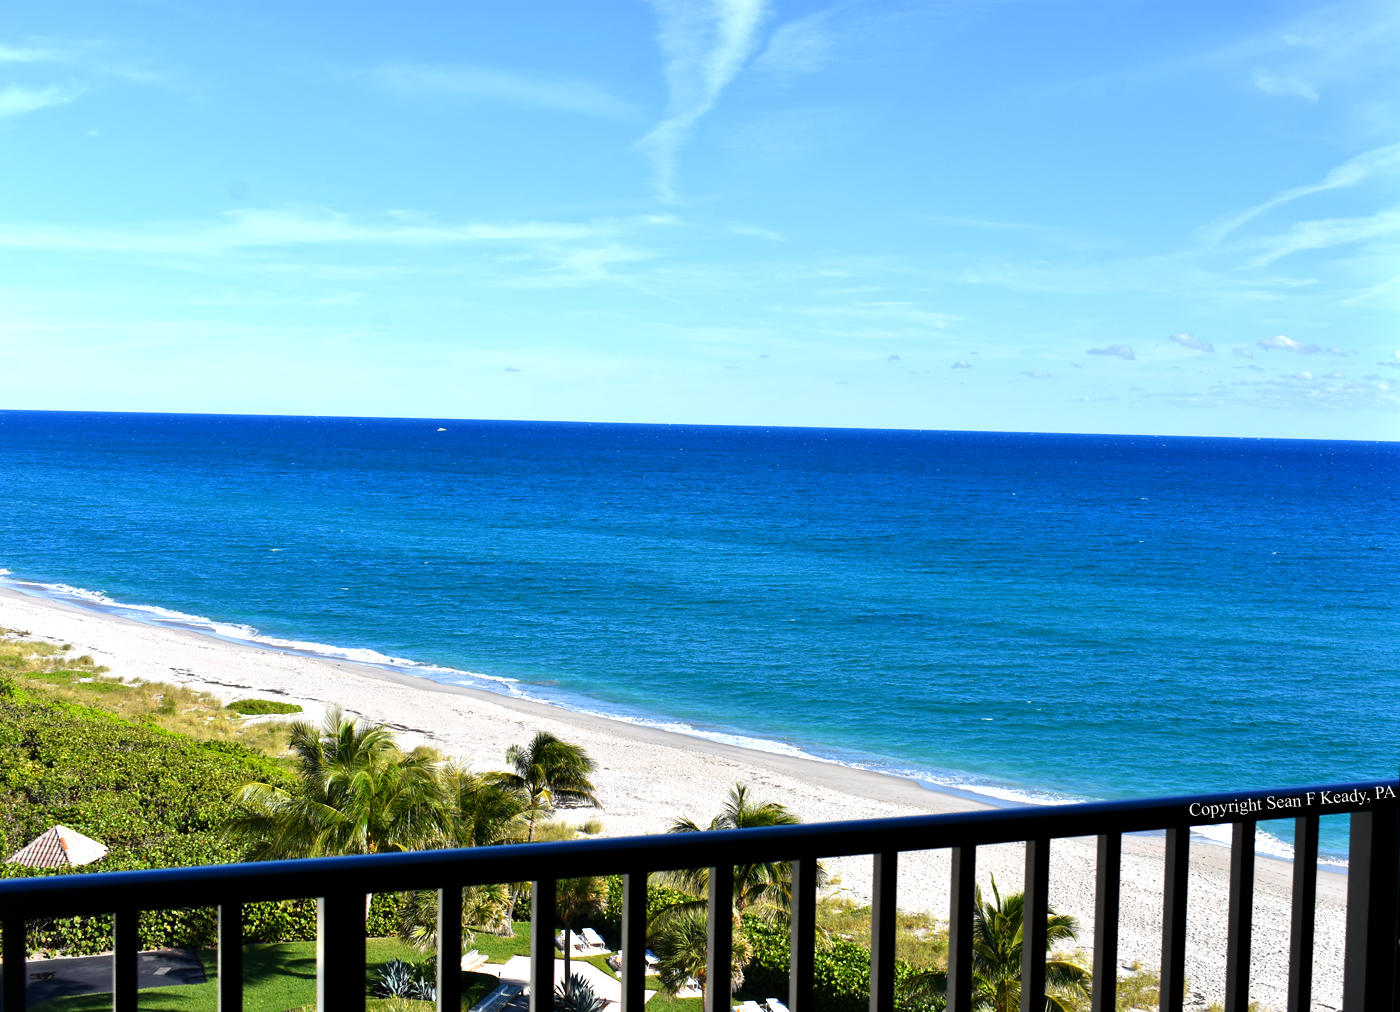 Wake up to spectacular Ocean views of Juno Beach from every room! Listen to the crashing waves from this updated split bedroom 9th floor condo. Sit on your private balcony and watch the waves rolling over the white sand. This building is located on the quietest section of beach in Palm Beach County and one mile from the Juno Beach pier. Live the waterfront lifestyle only minutes from Gardens Mall, great local shops, amazing restaurants, local parks and some of the best beaches in America. The building has a private community pool, private Oceanfront Beach Gazebo, extra storage, bike storage, community room w/ kitchen & on-site manager. All information provided is deemed reliable, but is not guaranteed and should be independently verified.